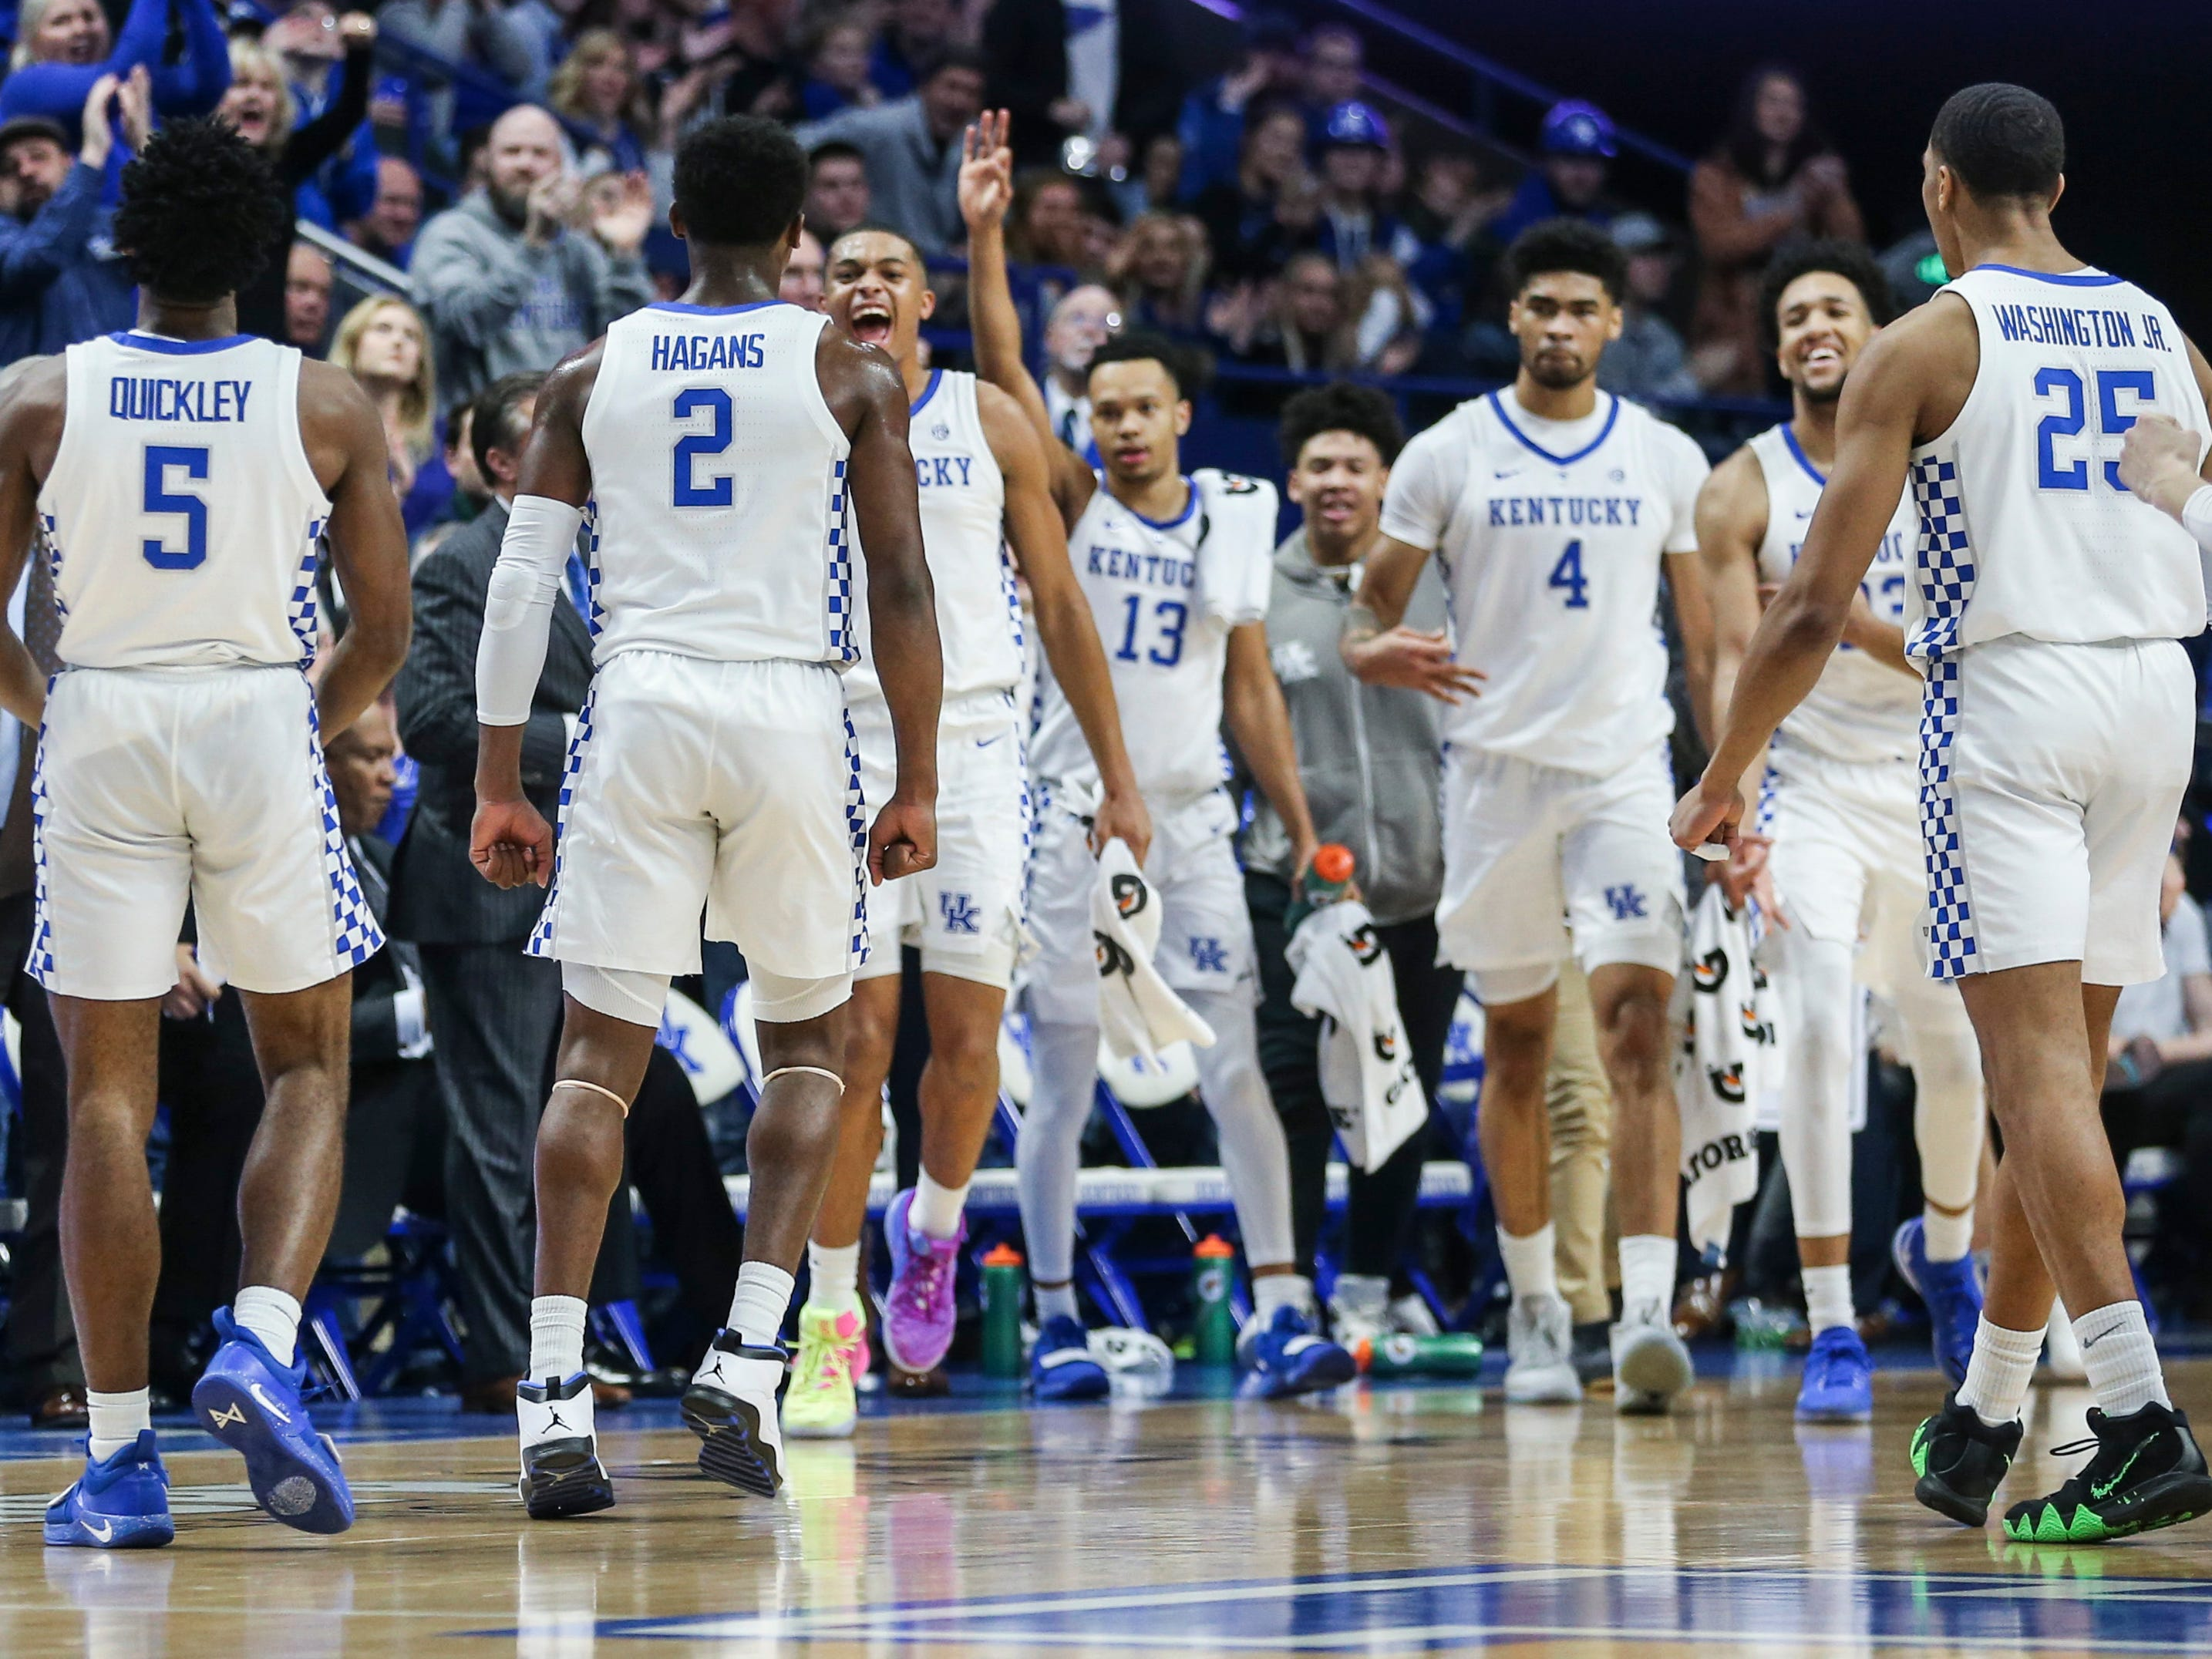 Kentucky's Keldon Johnson yells towards Ashton Hagans as the rest of the Wildcats celebrate after Immanuel Quickly hit a three-pointer to help spark the Wildcats in the first half against Vandy Saturday night at Rupp Arena in Lexington. Quickley finished with 12 points. January 12, 2019